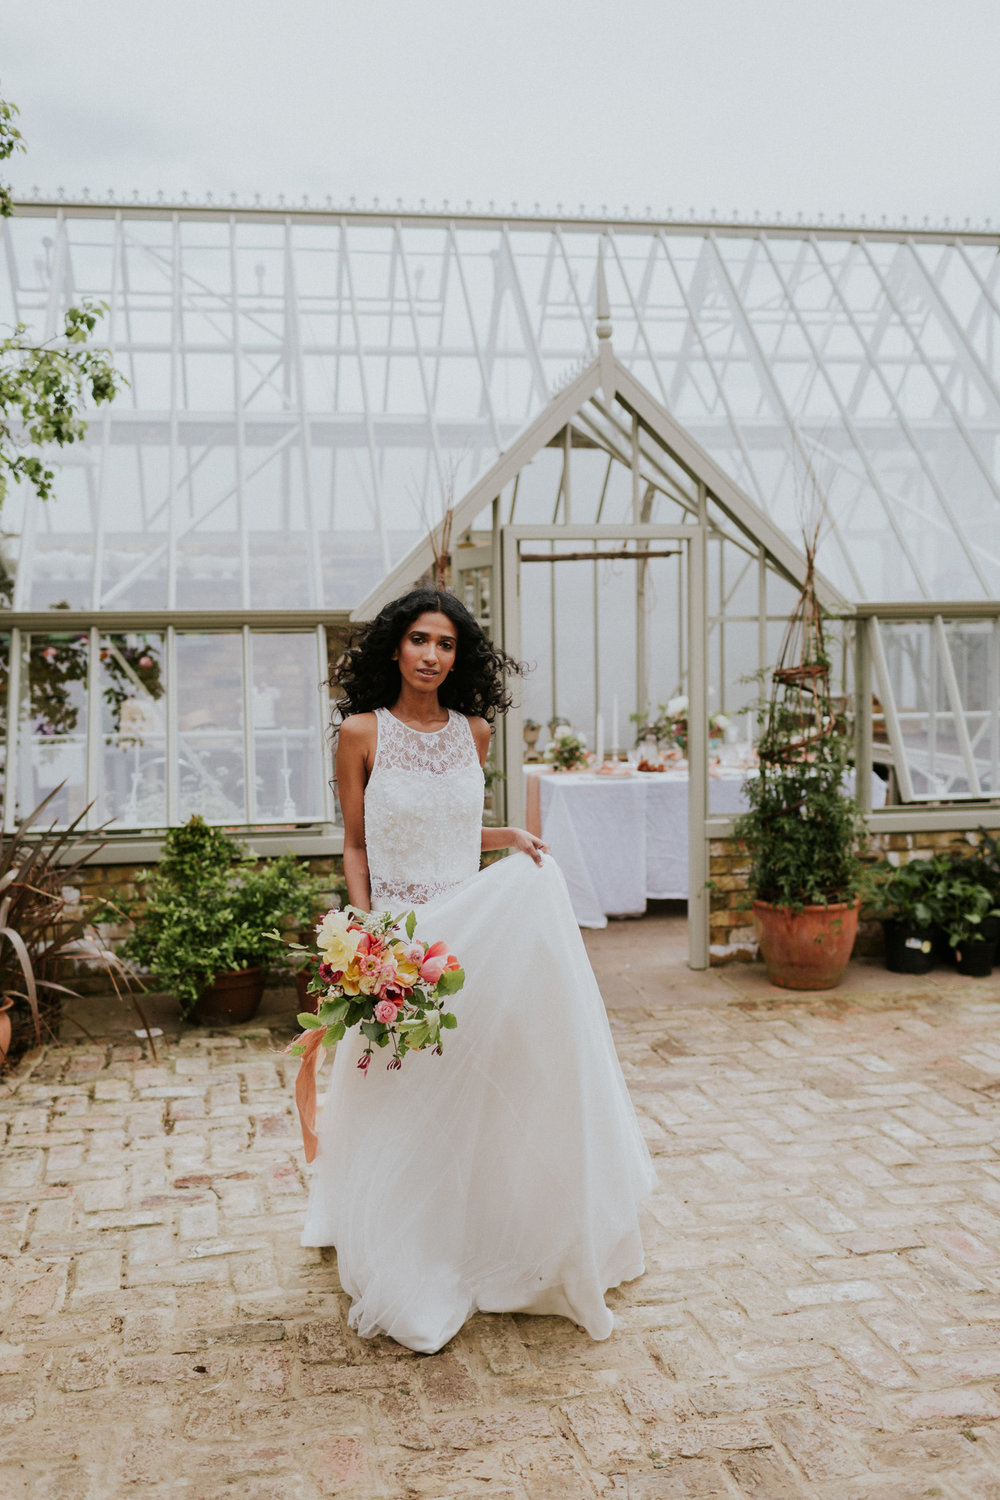 The Timeless Stylist - Wedding Design and Styling - Conservatory Wedding UK